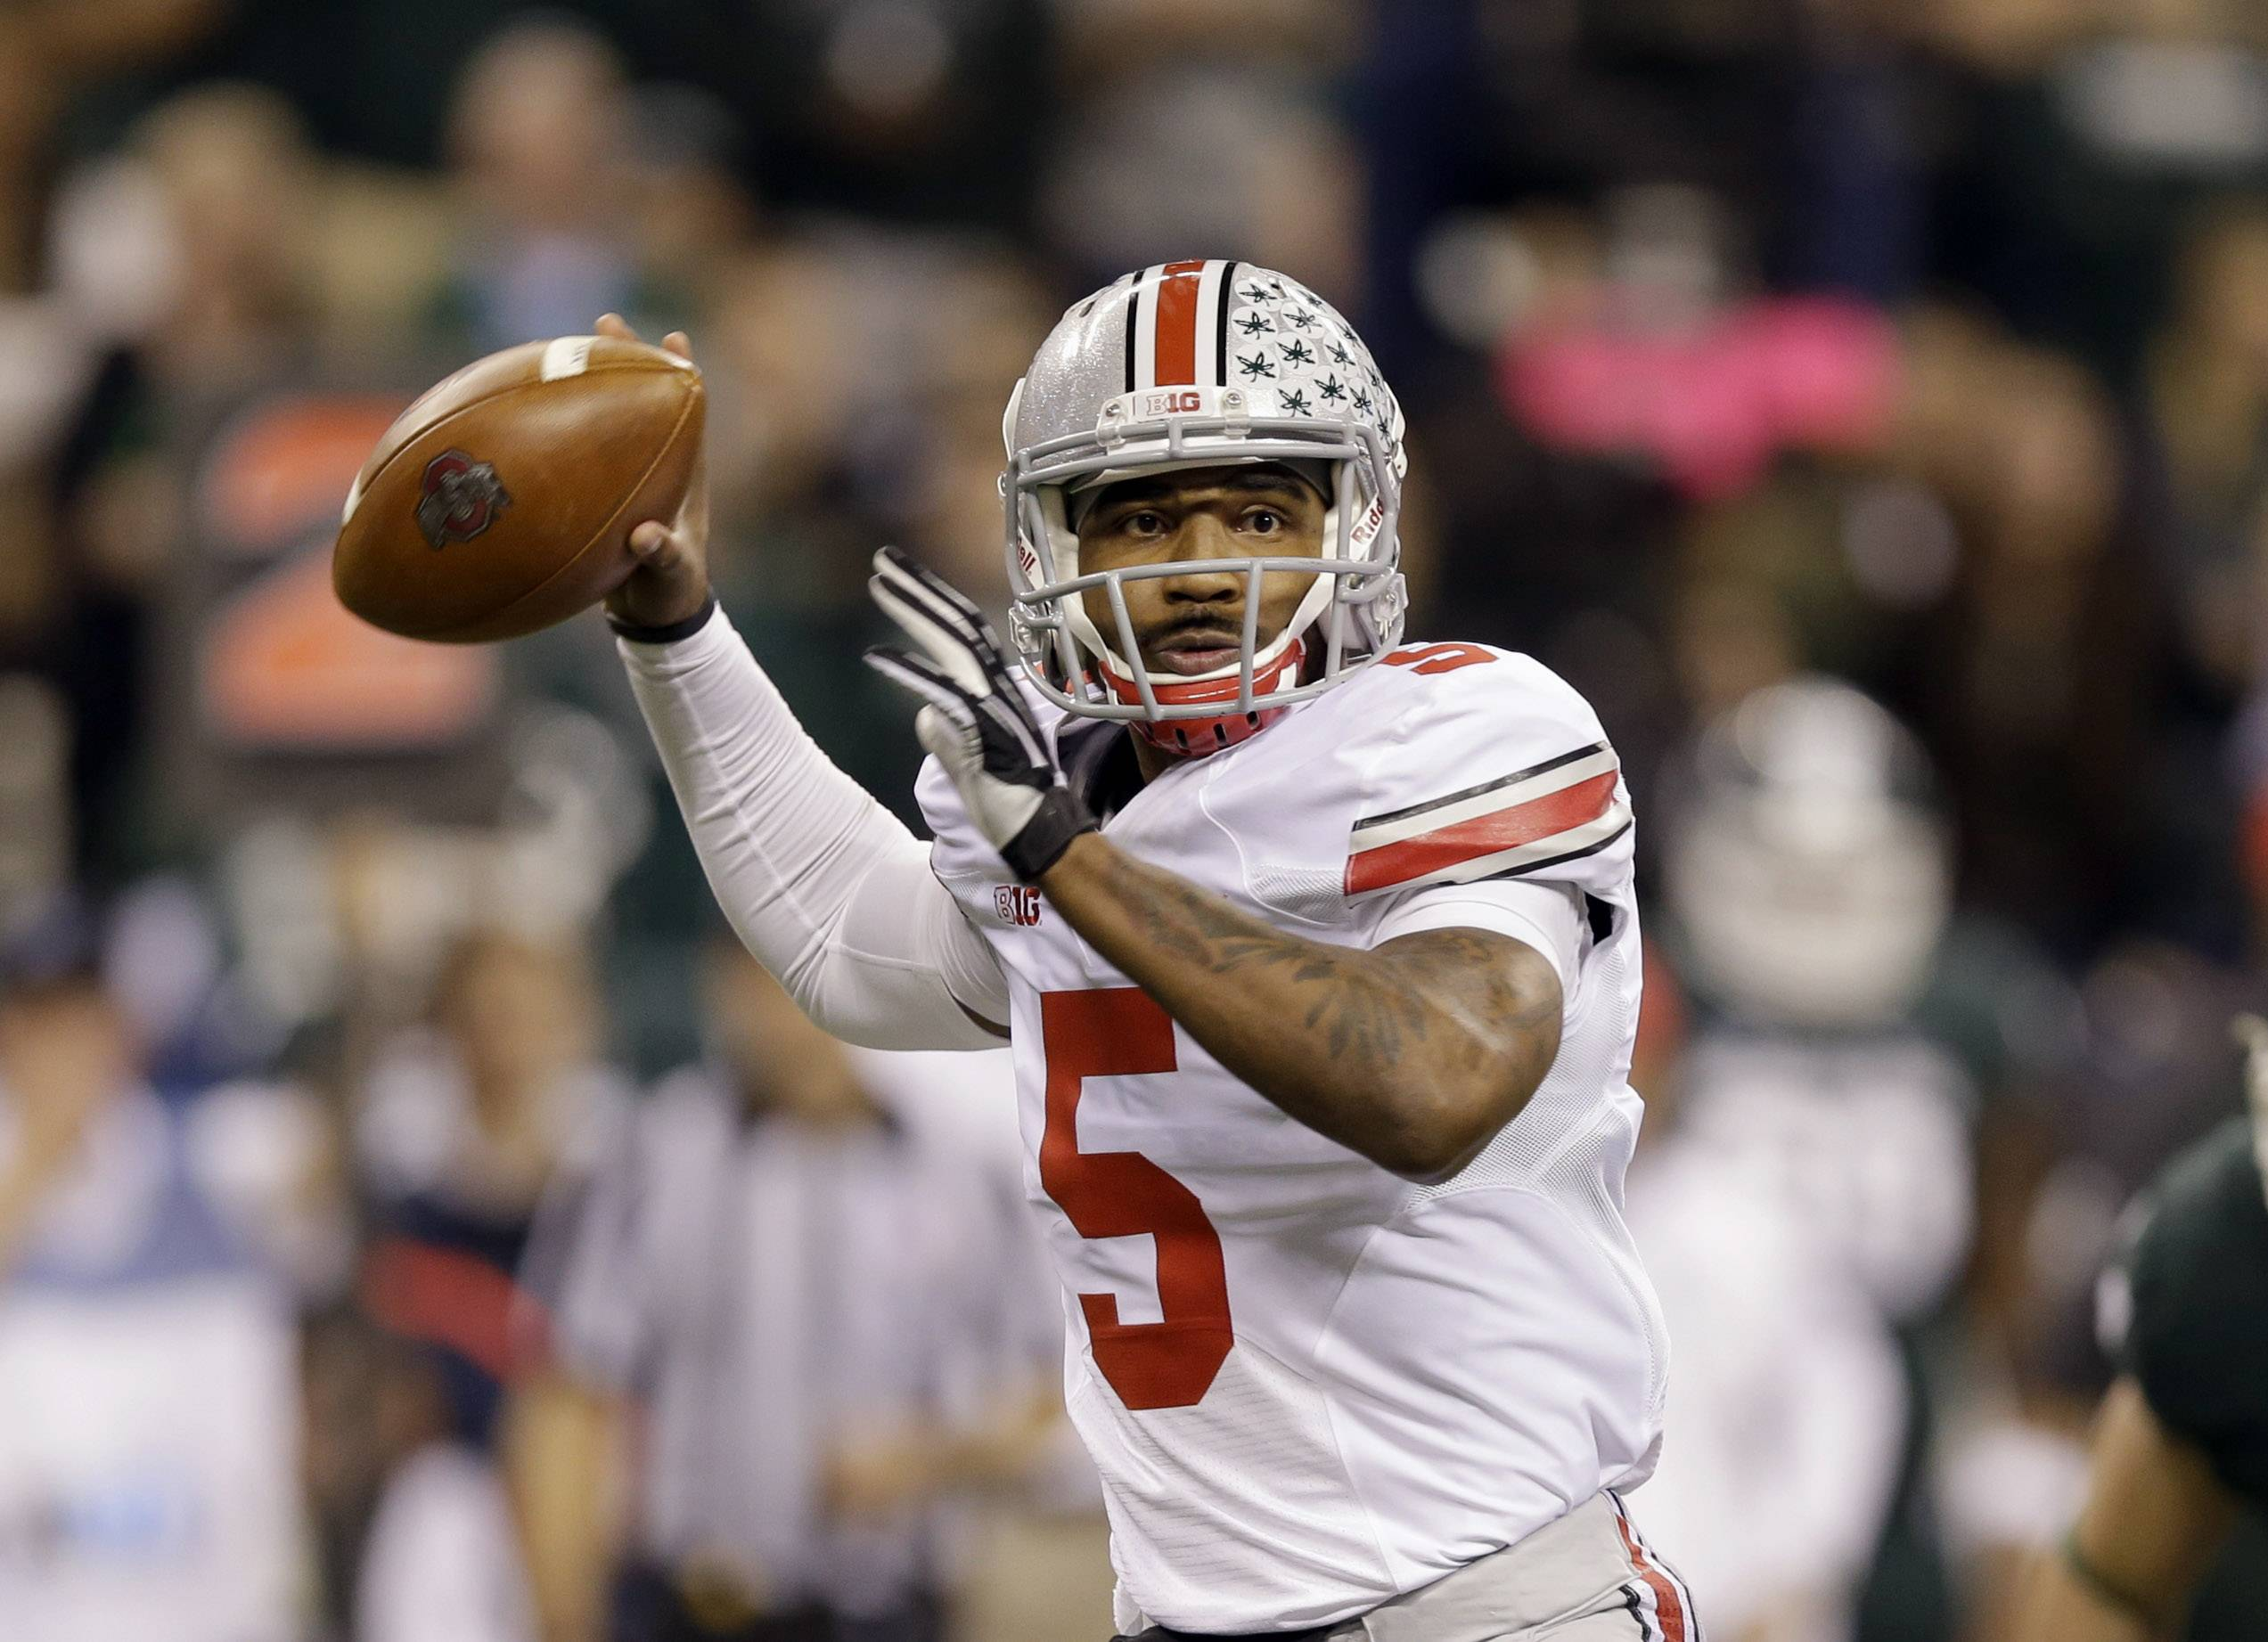 Associated Press/Dec. 7, 2013Ohio State quarterback Braxton Miller was the Big Ten MVP last season, throwing for 2,094 yards and 24 touchdowns and rushing for 1,068 yards and 12 TDs.